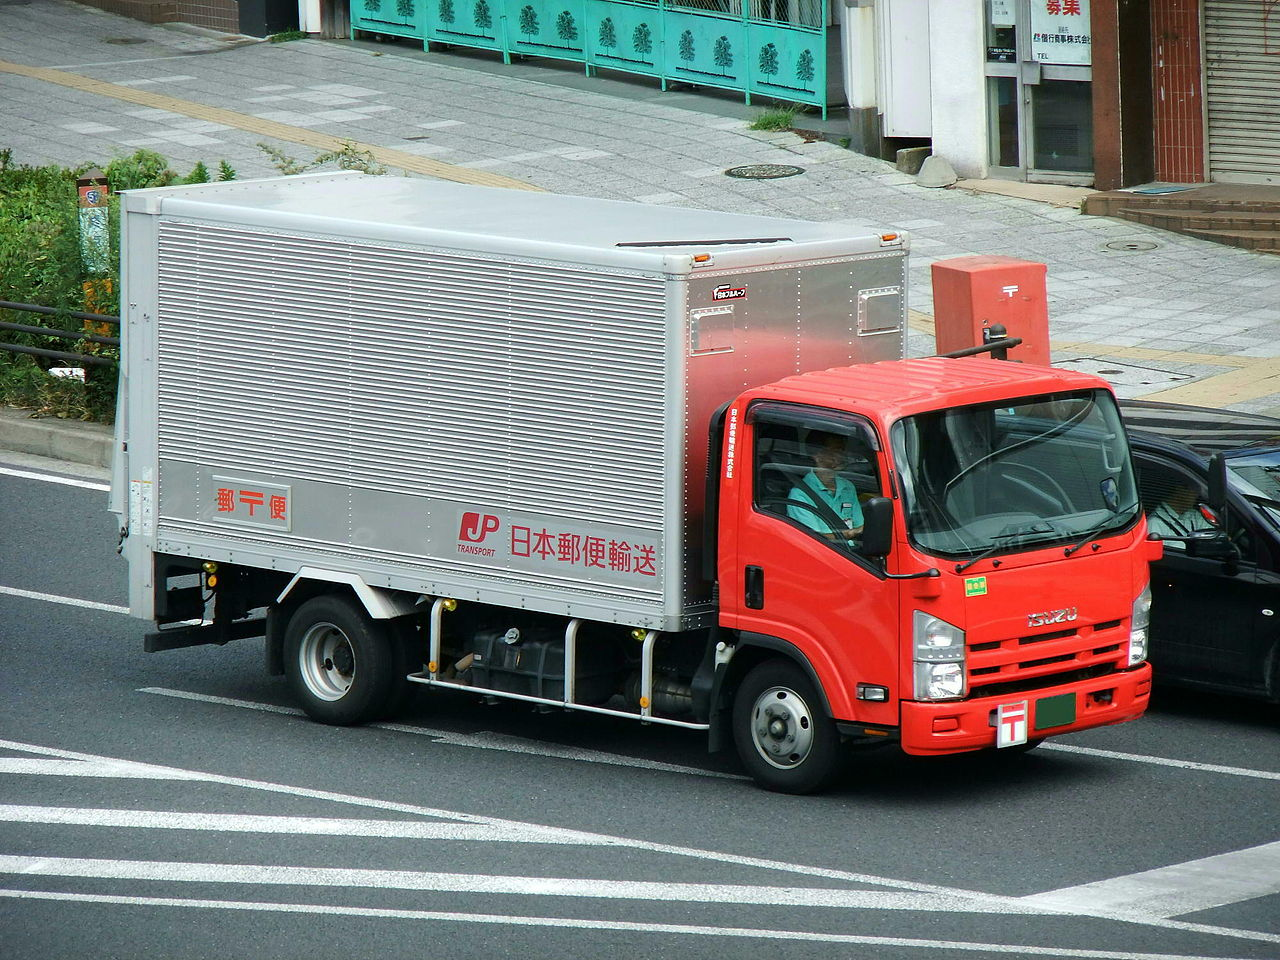 File:ISUZU Elf 6th Generation, Post Office Truck.jpg